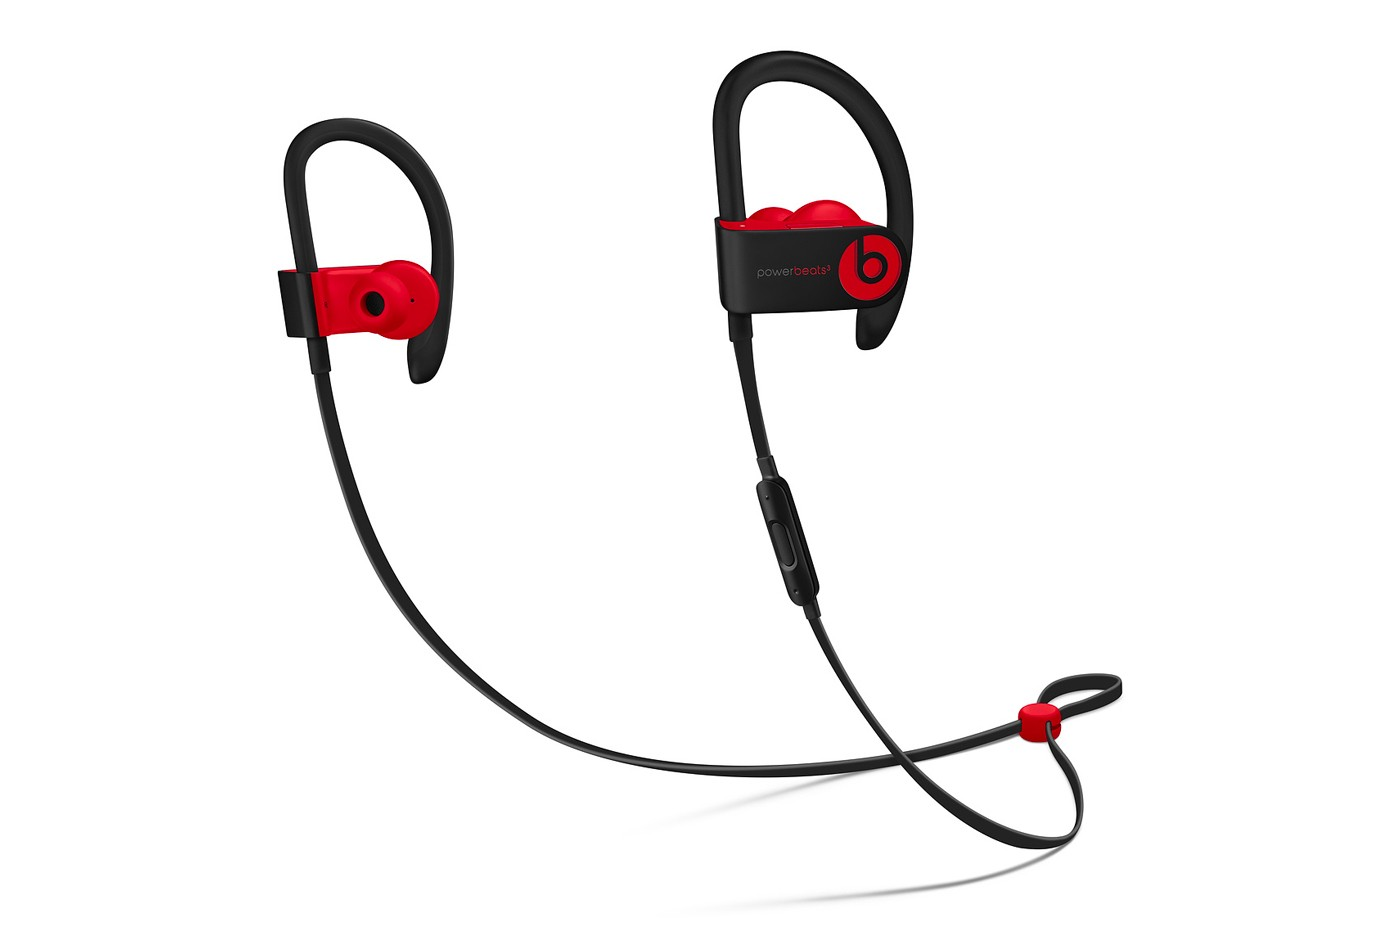 https___hypebeast.com_image_2019_03_beats-by-dr-dre-cordless-powerbeats-release-001